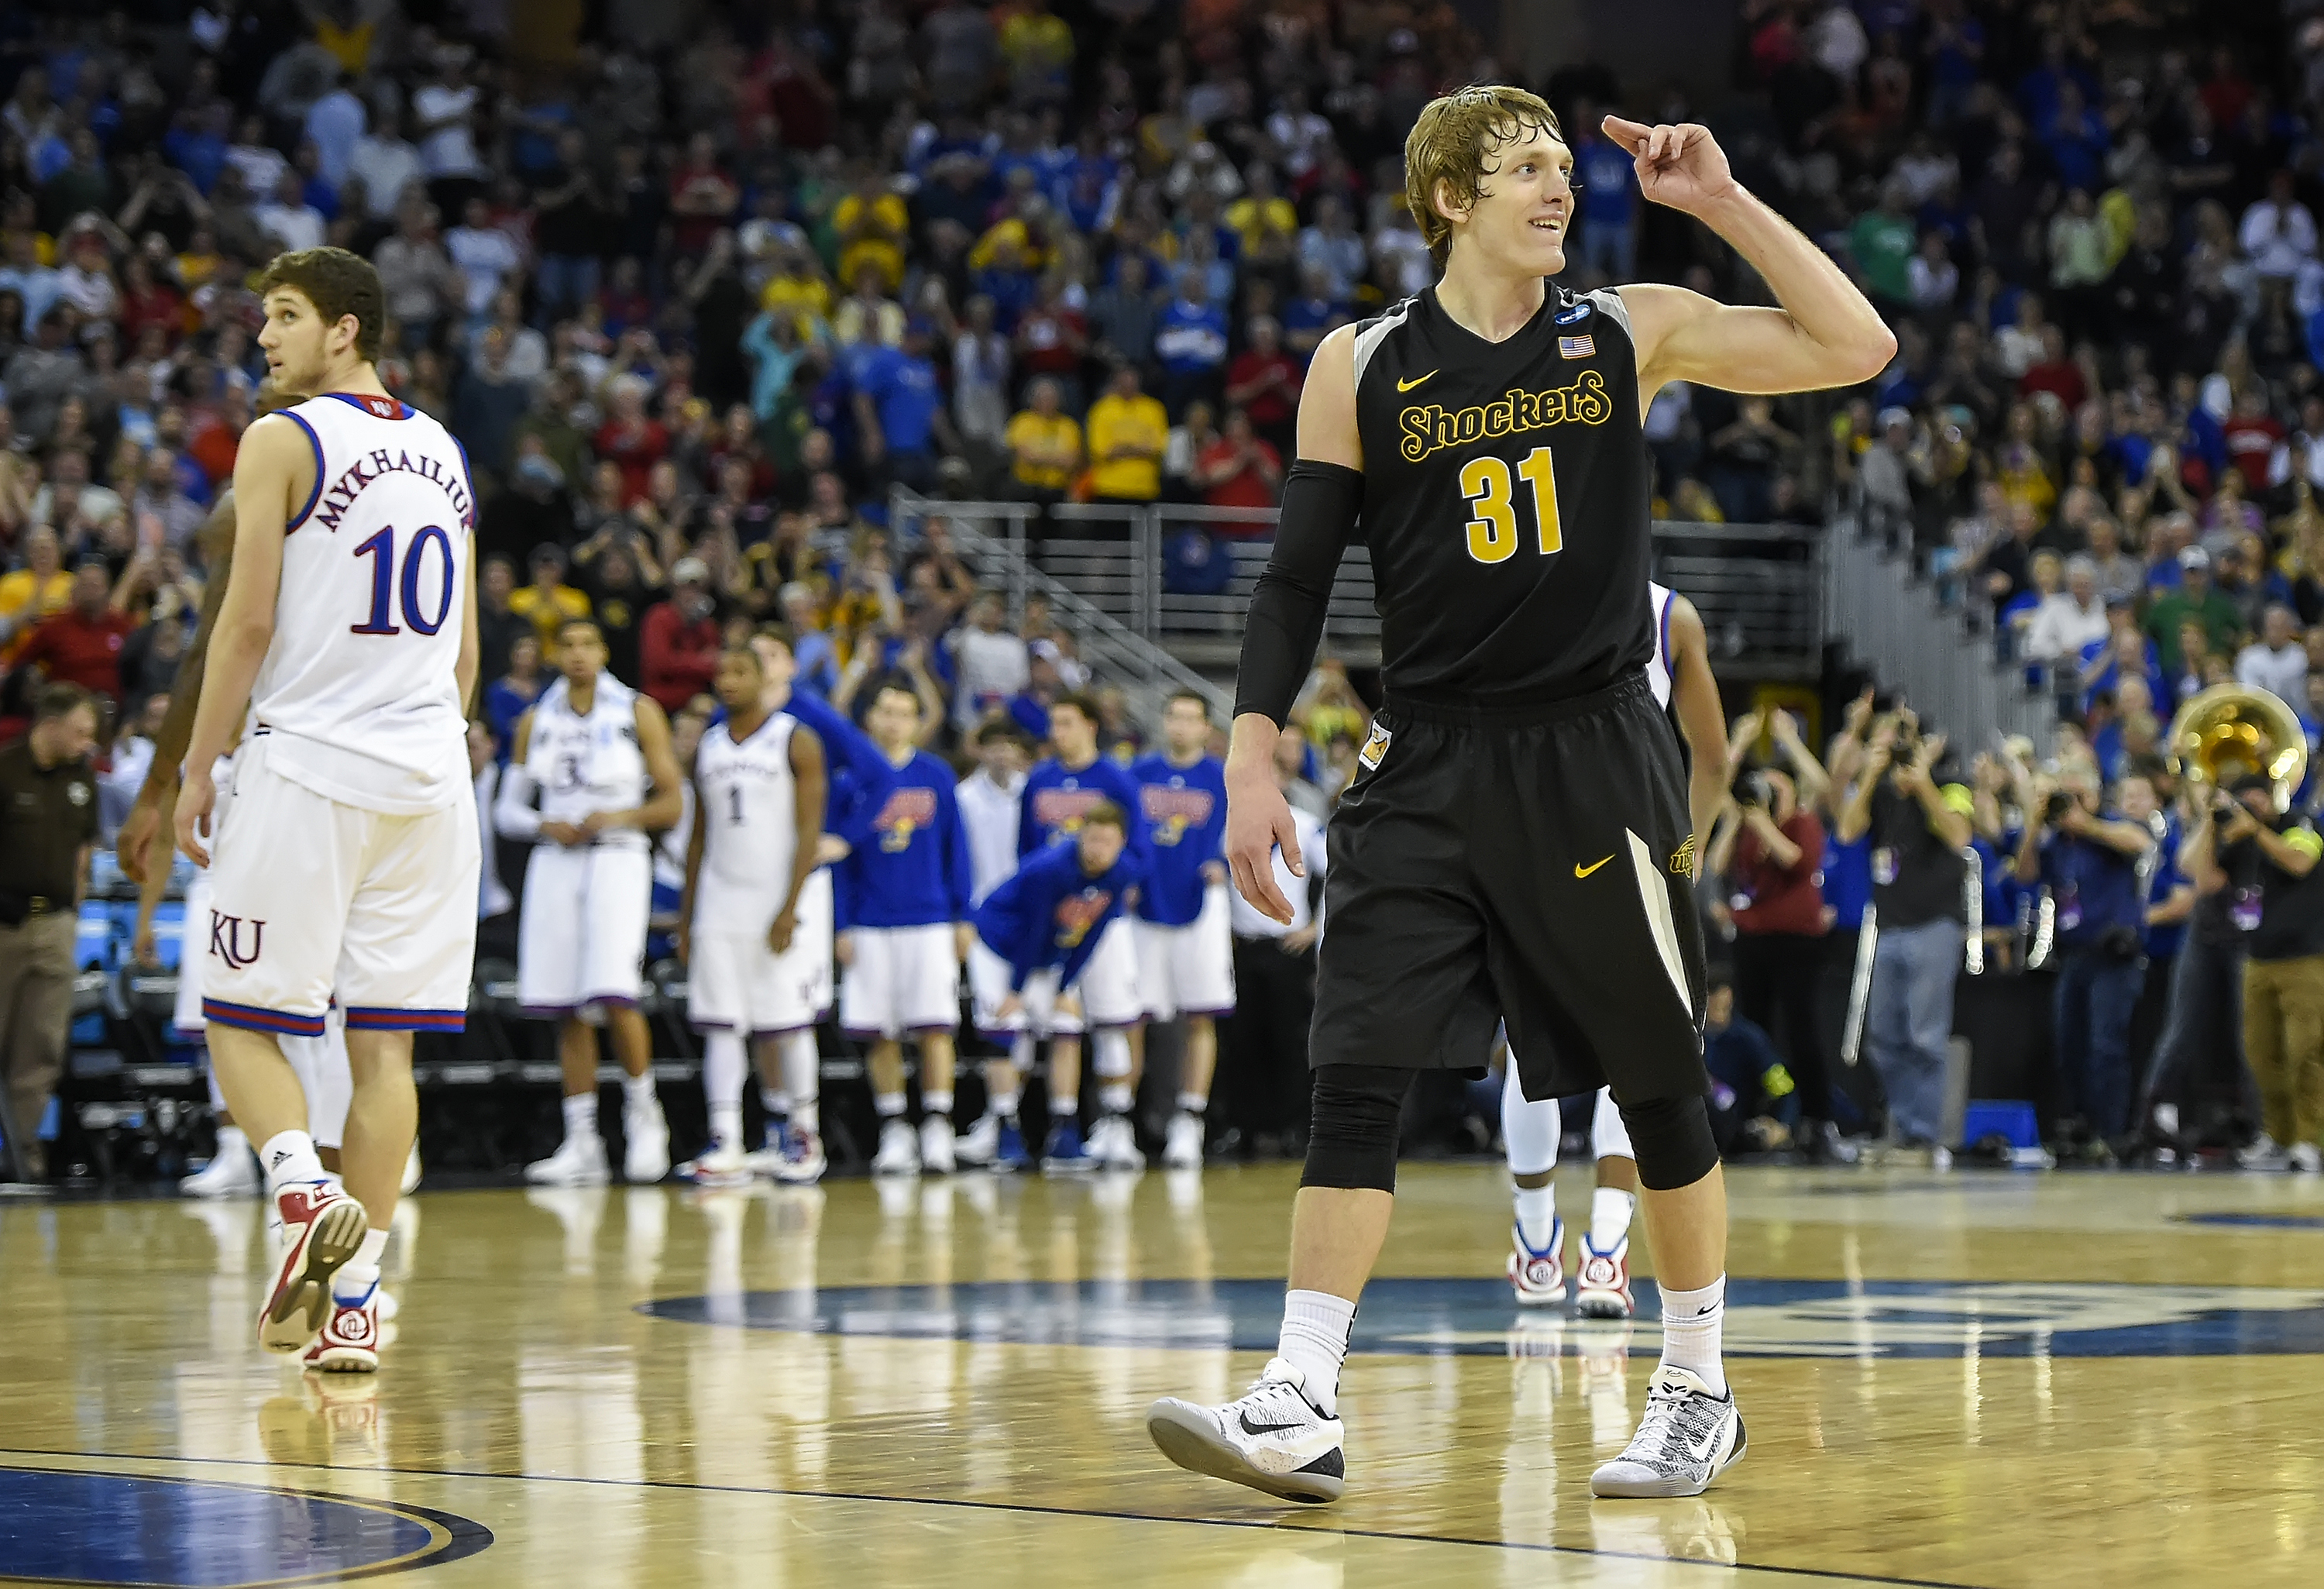 Wichita State vs. Kansas